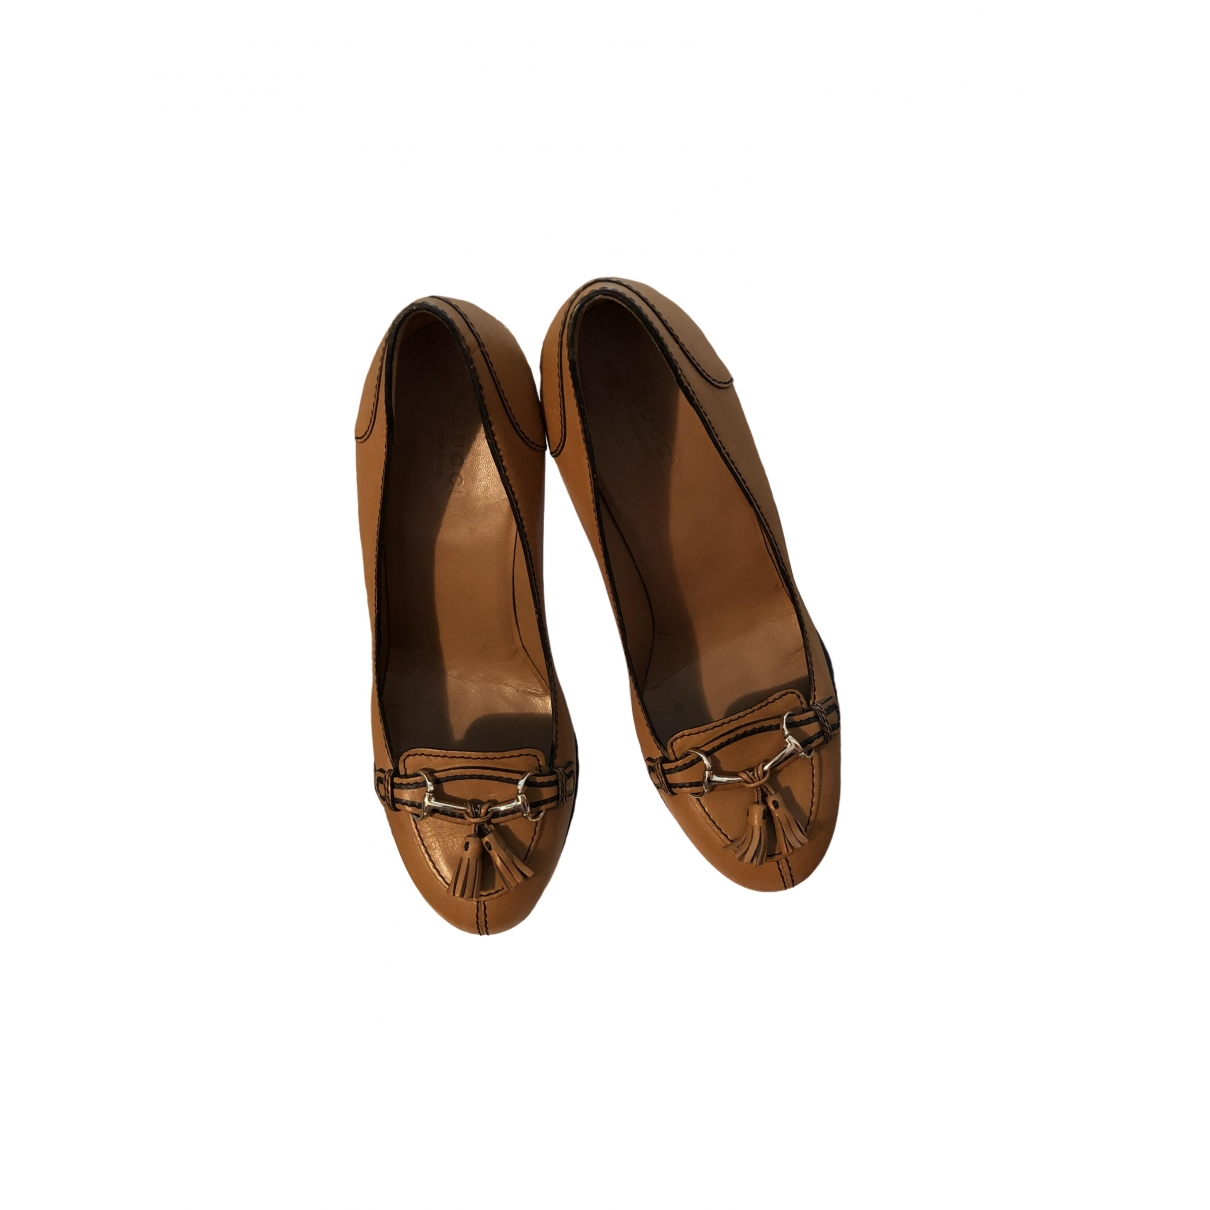 Gucci \N Camel Leather Heels for Women 37.5 EU